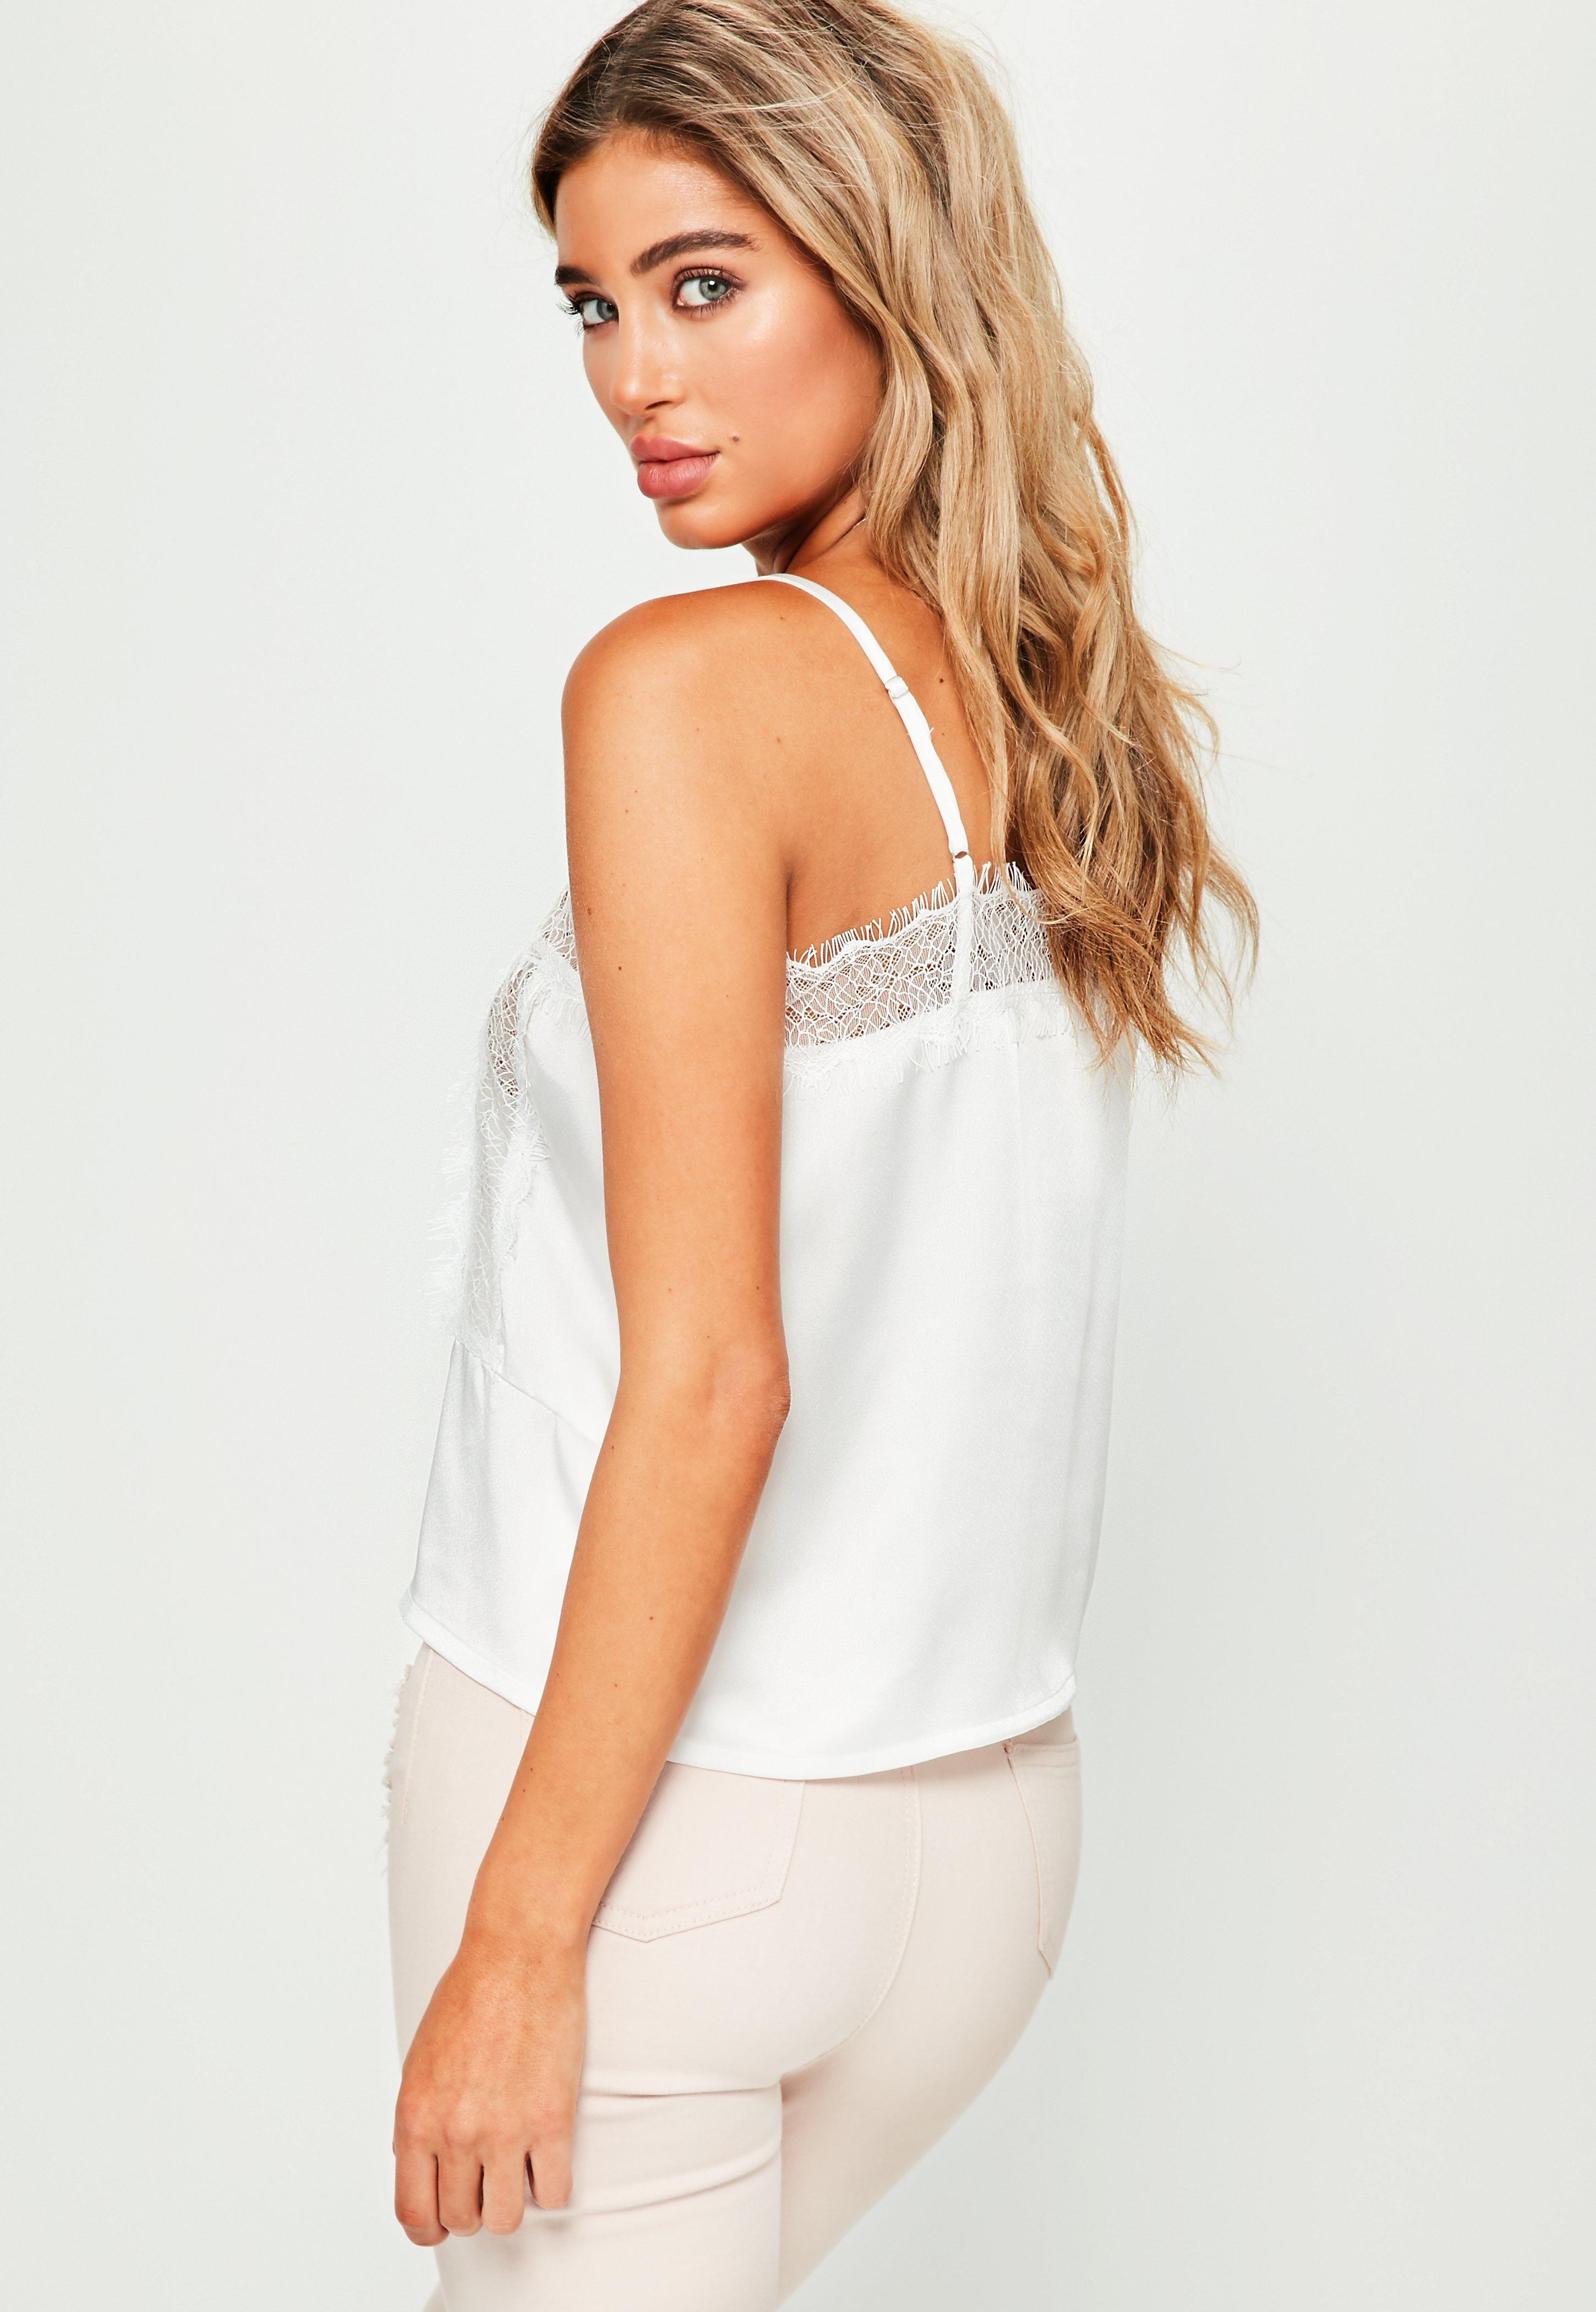 d51dbcf948e22 Lyst missguided white lace insert cami crop top in white jpg 2900x4200  Insert cami missguided lace